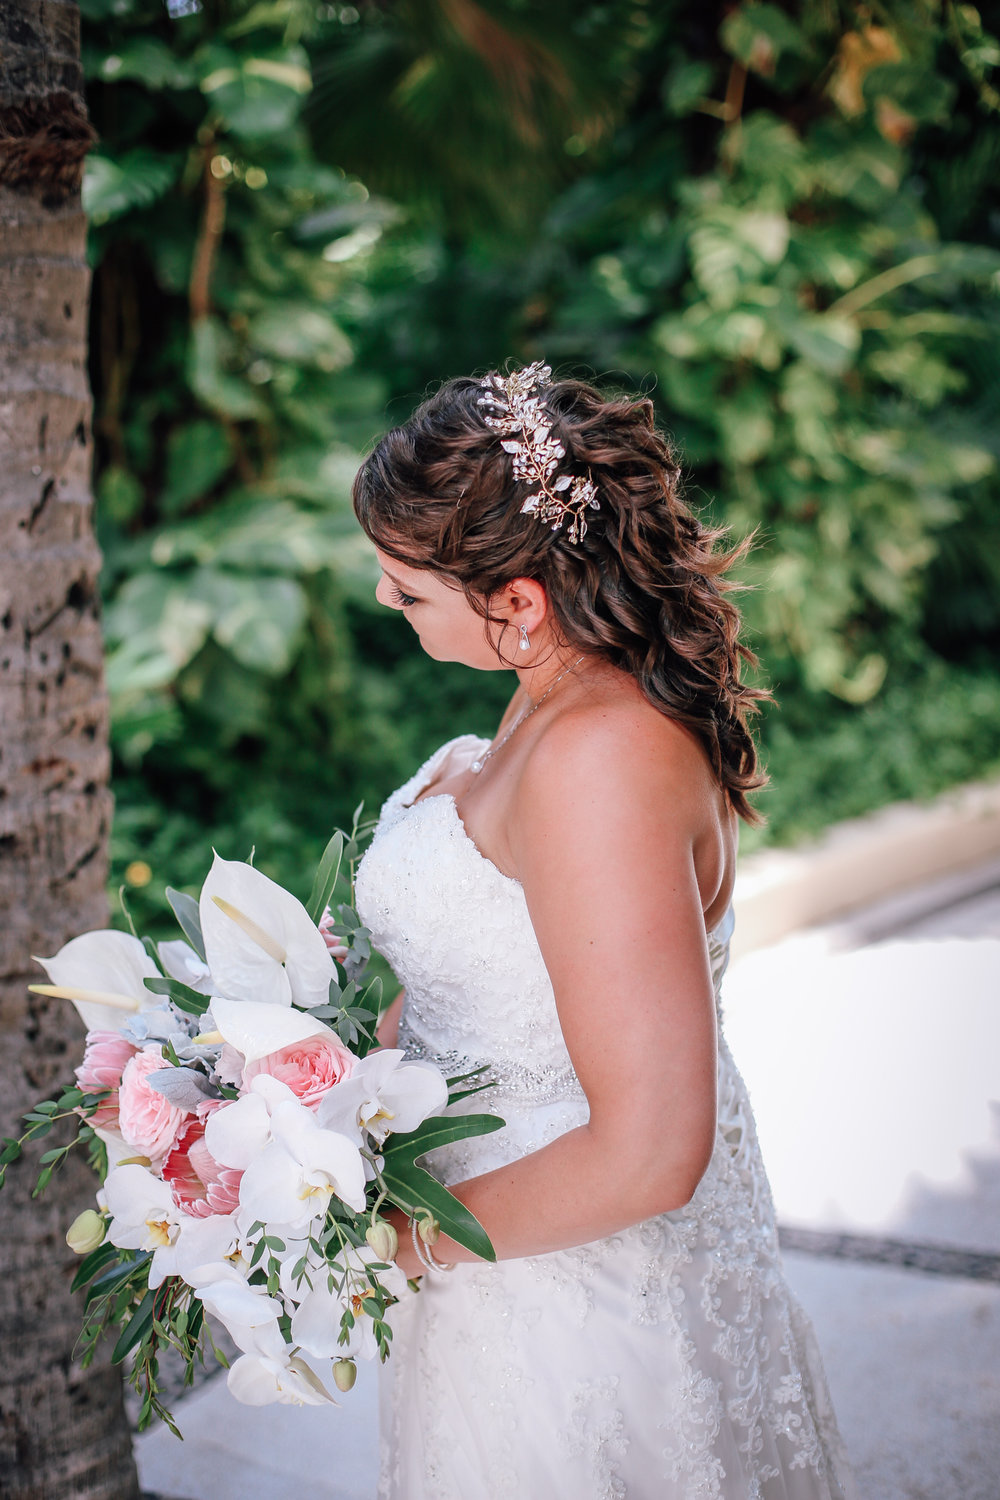 Tiffany and Ryan - Puerto Vallarta Wedding Photographer - 43.jpg